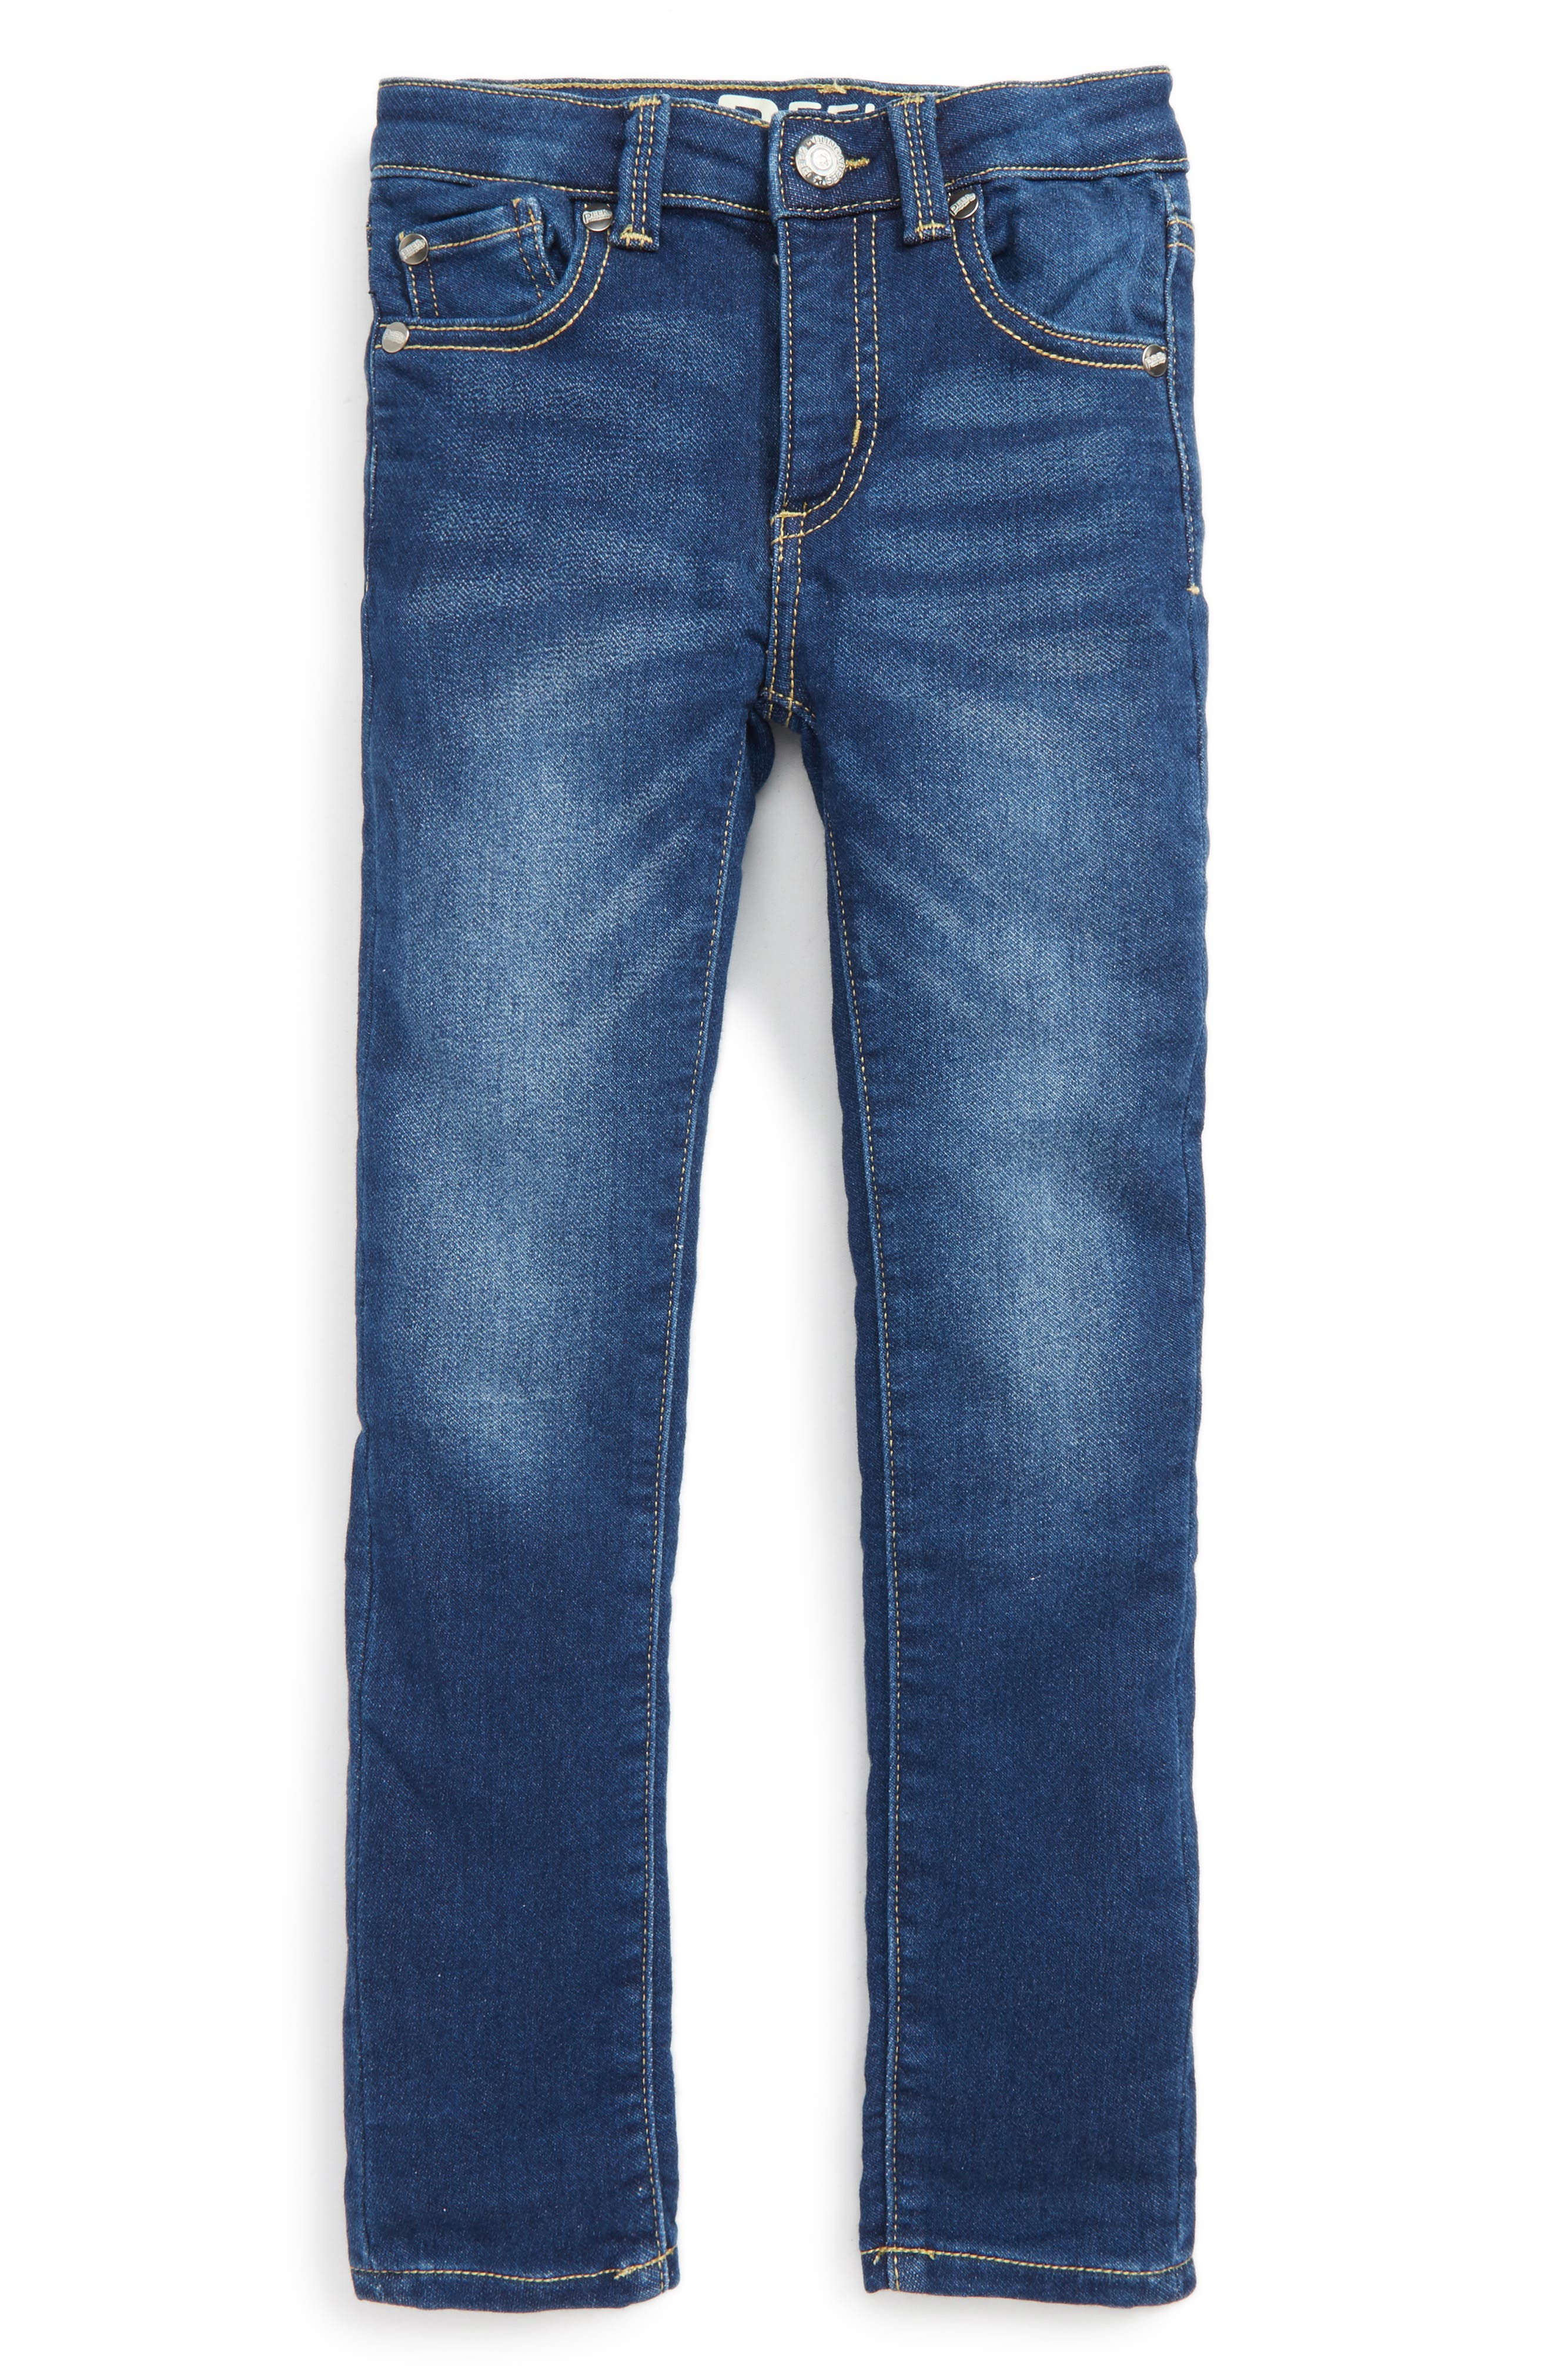 Taylor Skinny Jeans,                         Main,                         color, Med Authentic